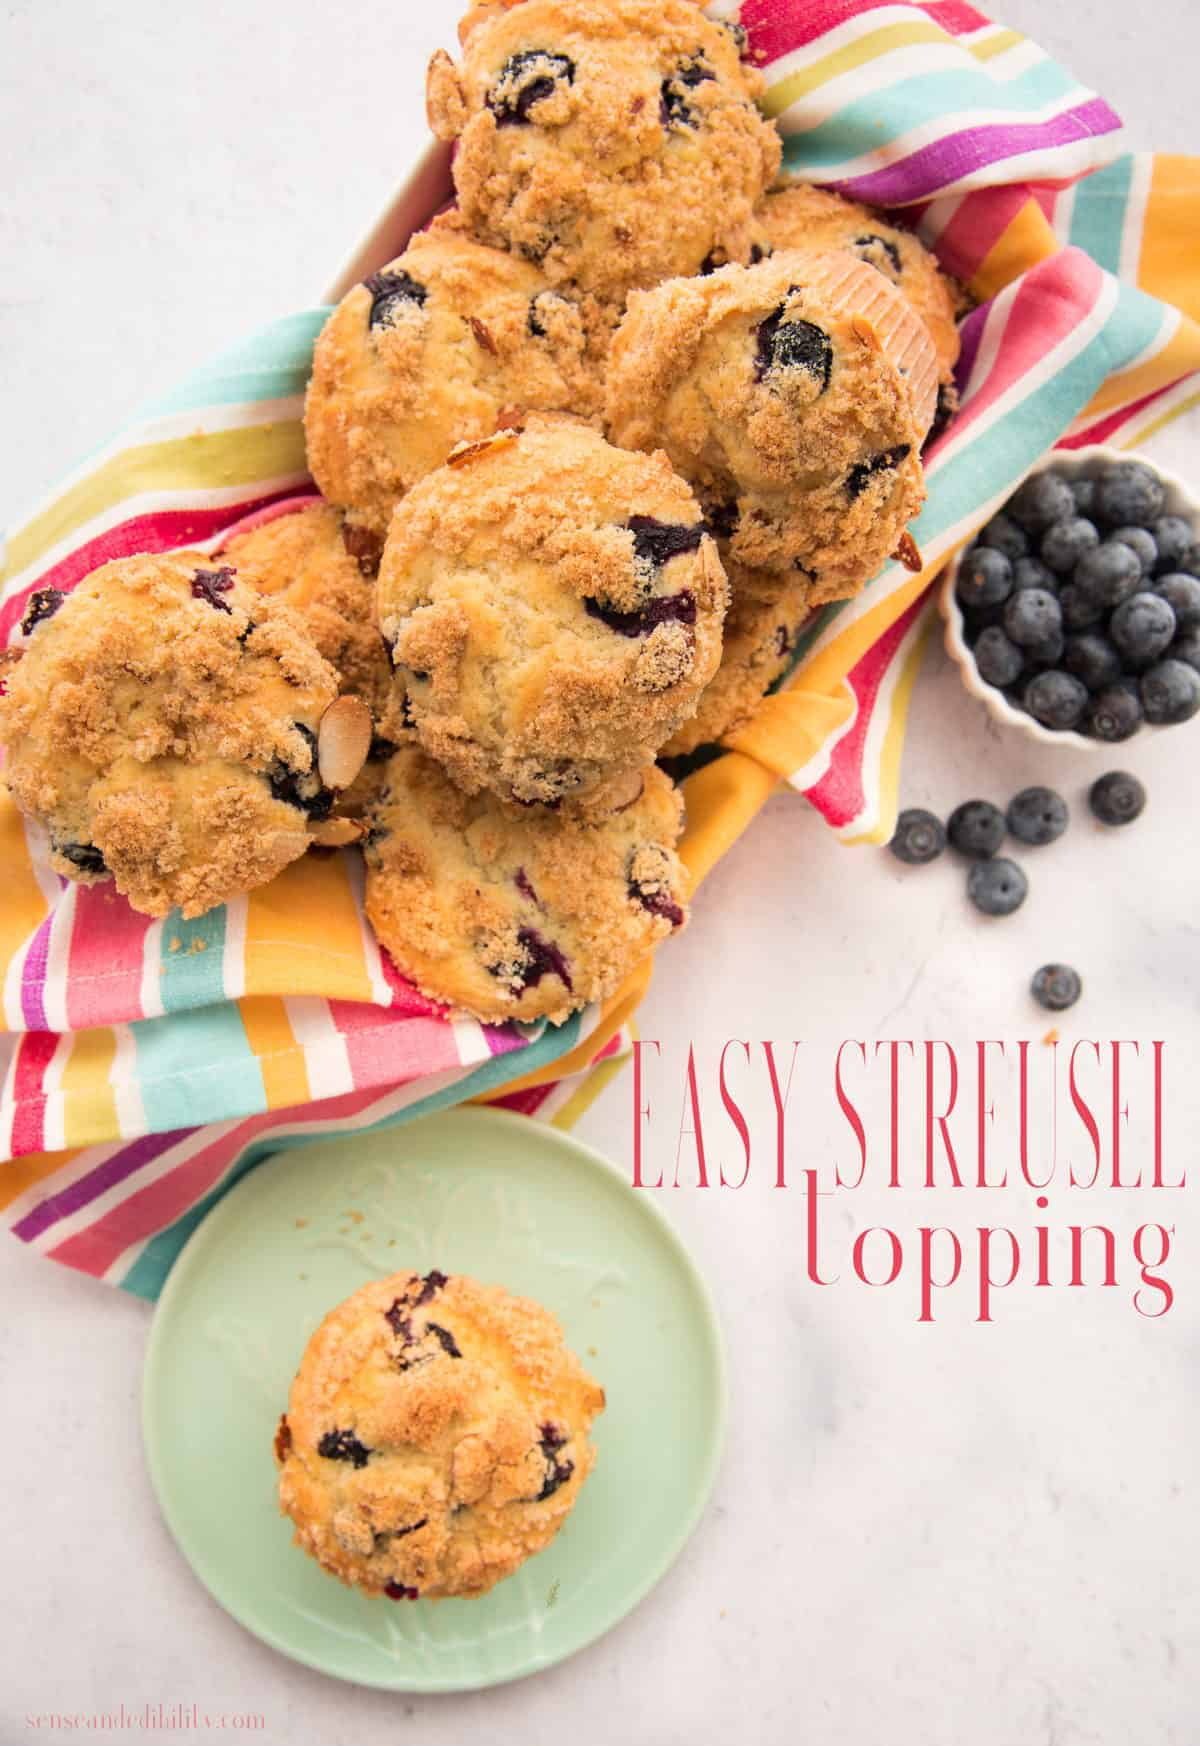 This easy-to-make Streusel Topping is the perfect way to elevate your favorite baked goods. #streusel #topping #pies #dessert #muffins #quickbread #sweets #easy  via @ediblesense